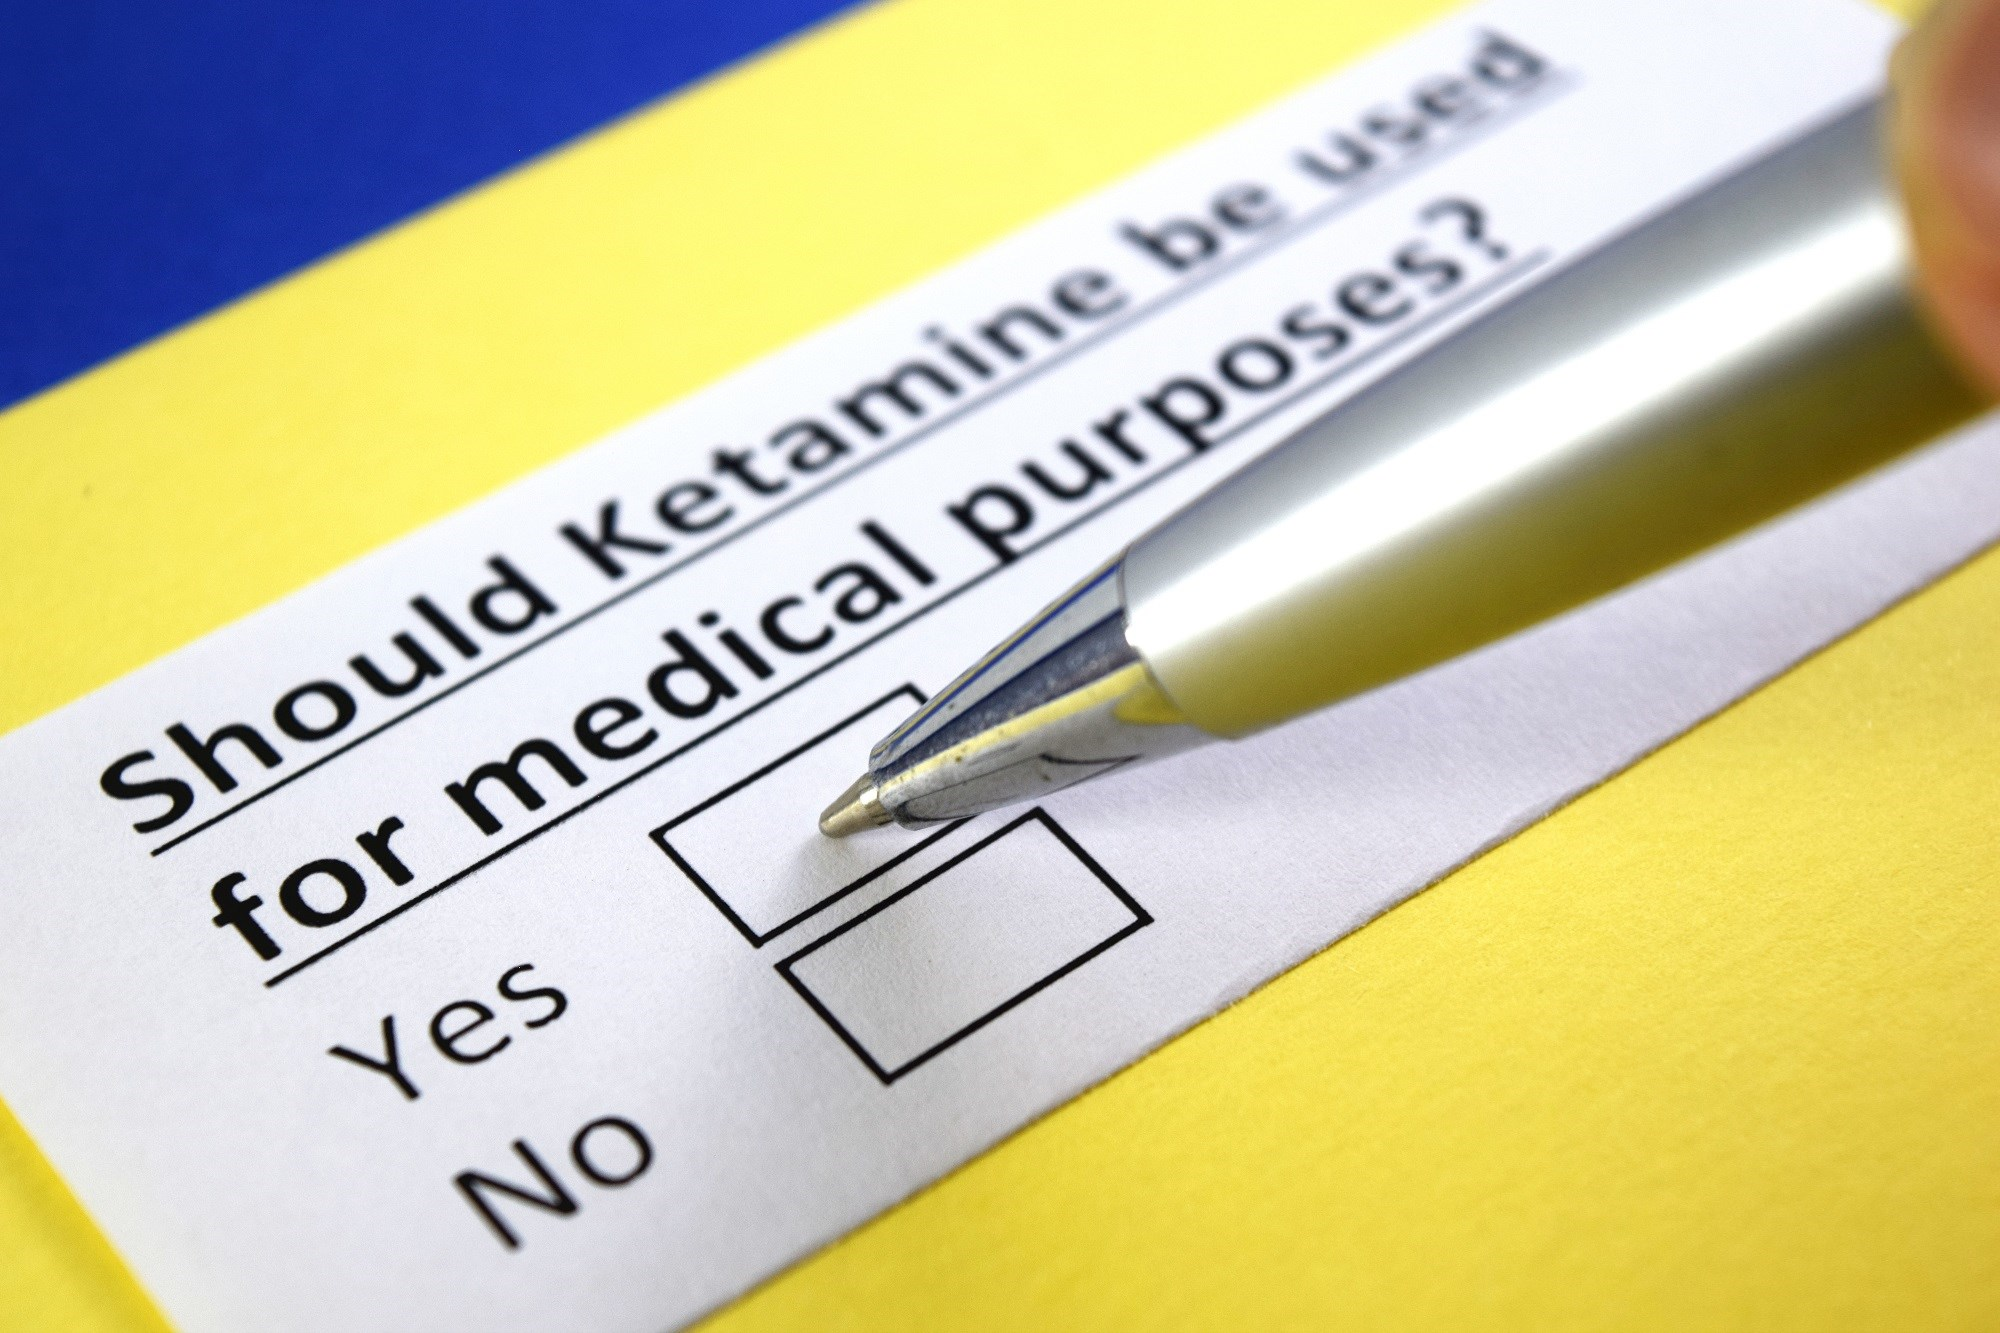 In a groundbreaking study, low-dose infusions of ketamine were found to produce a rapid antidepressant response.